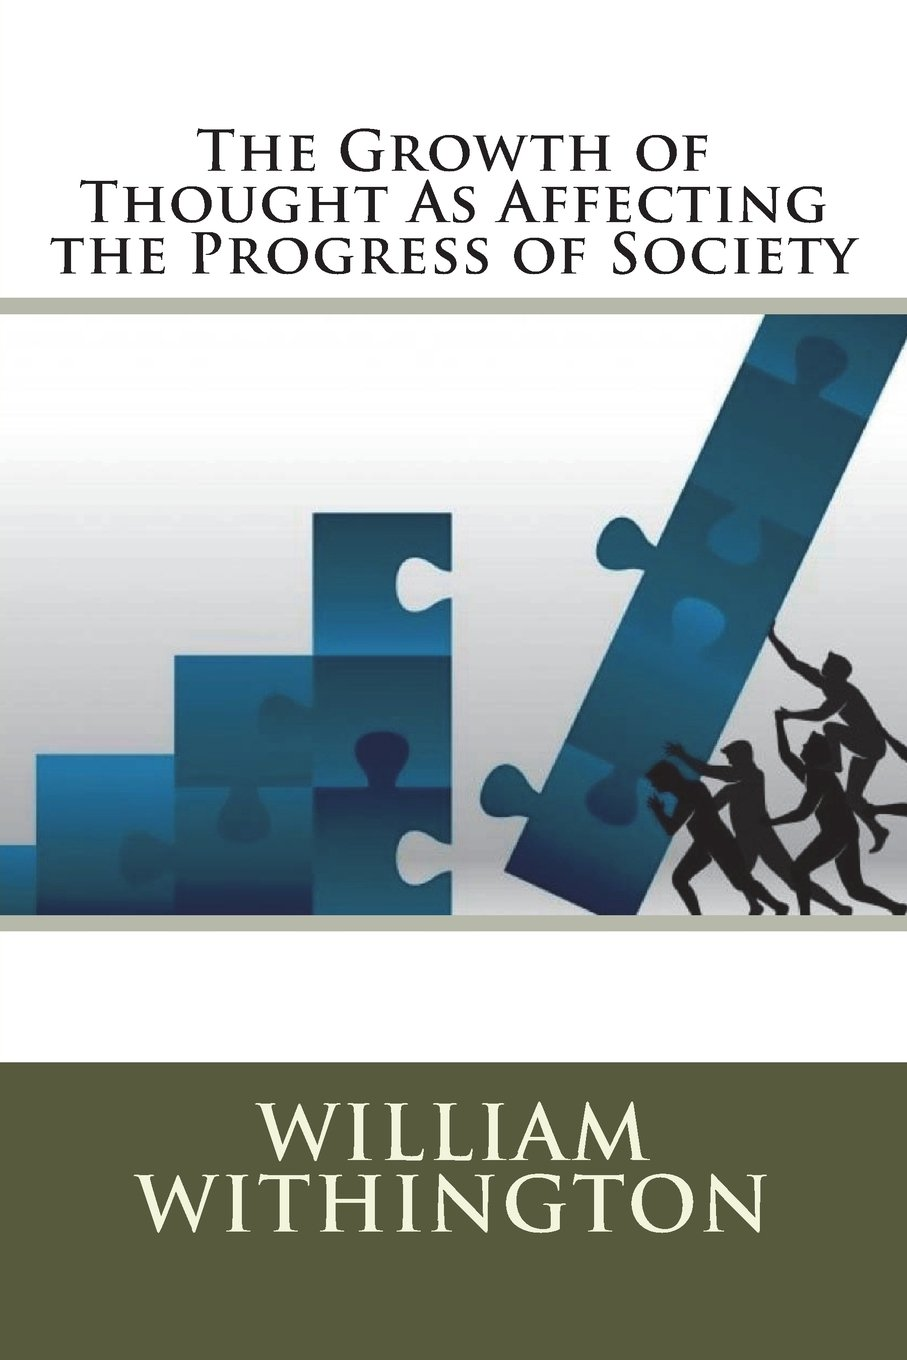 Download The Growth of Thought As Affecting the Progress of Society PDF